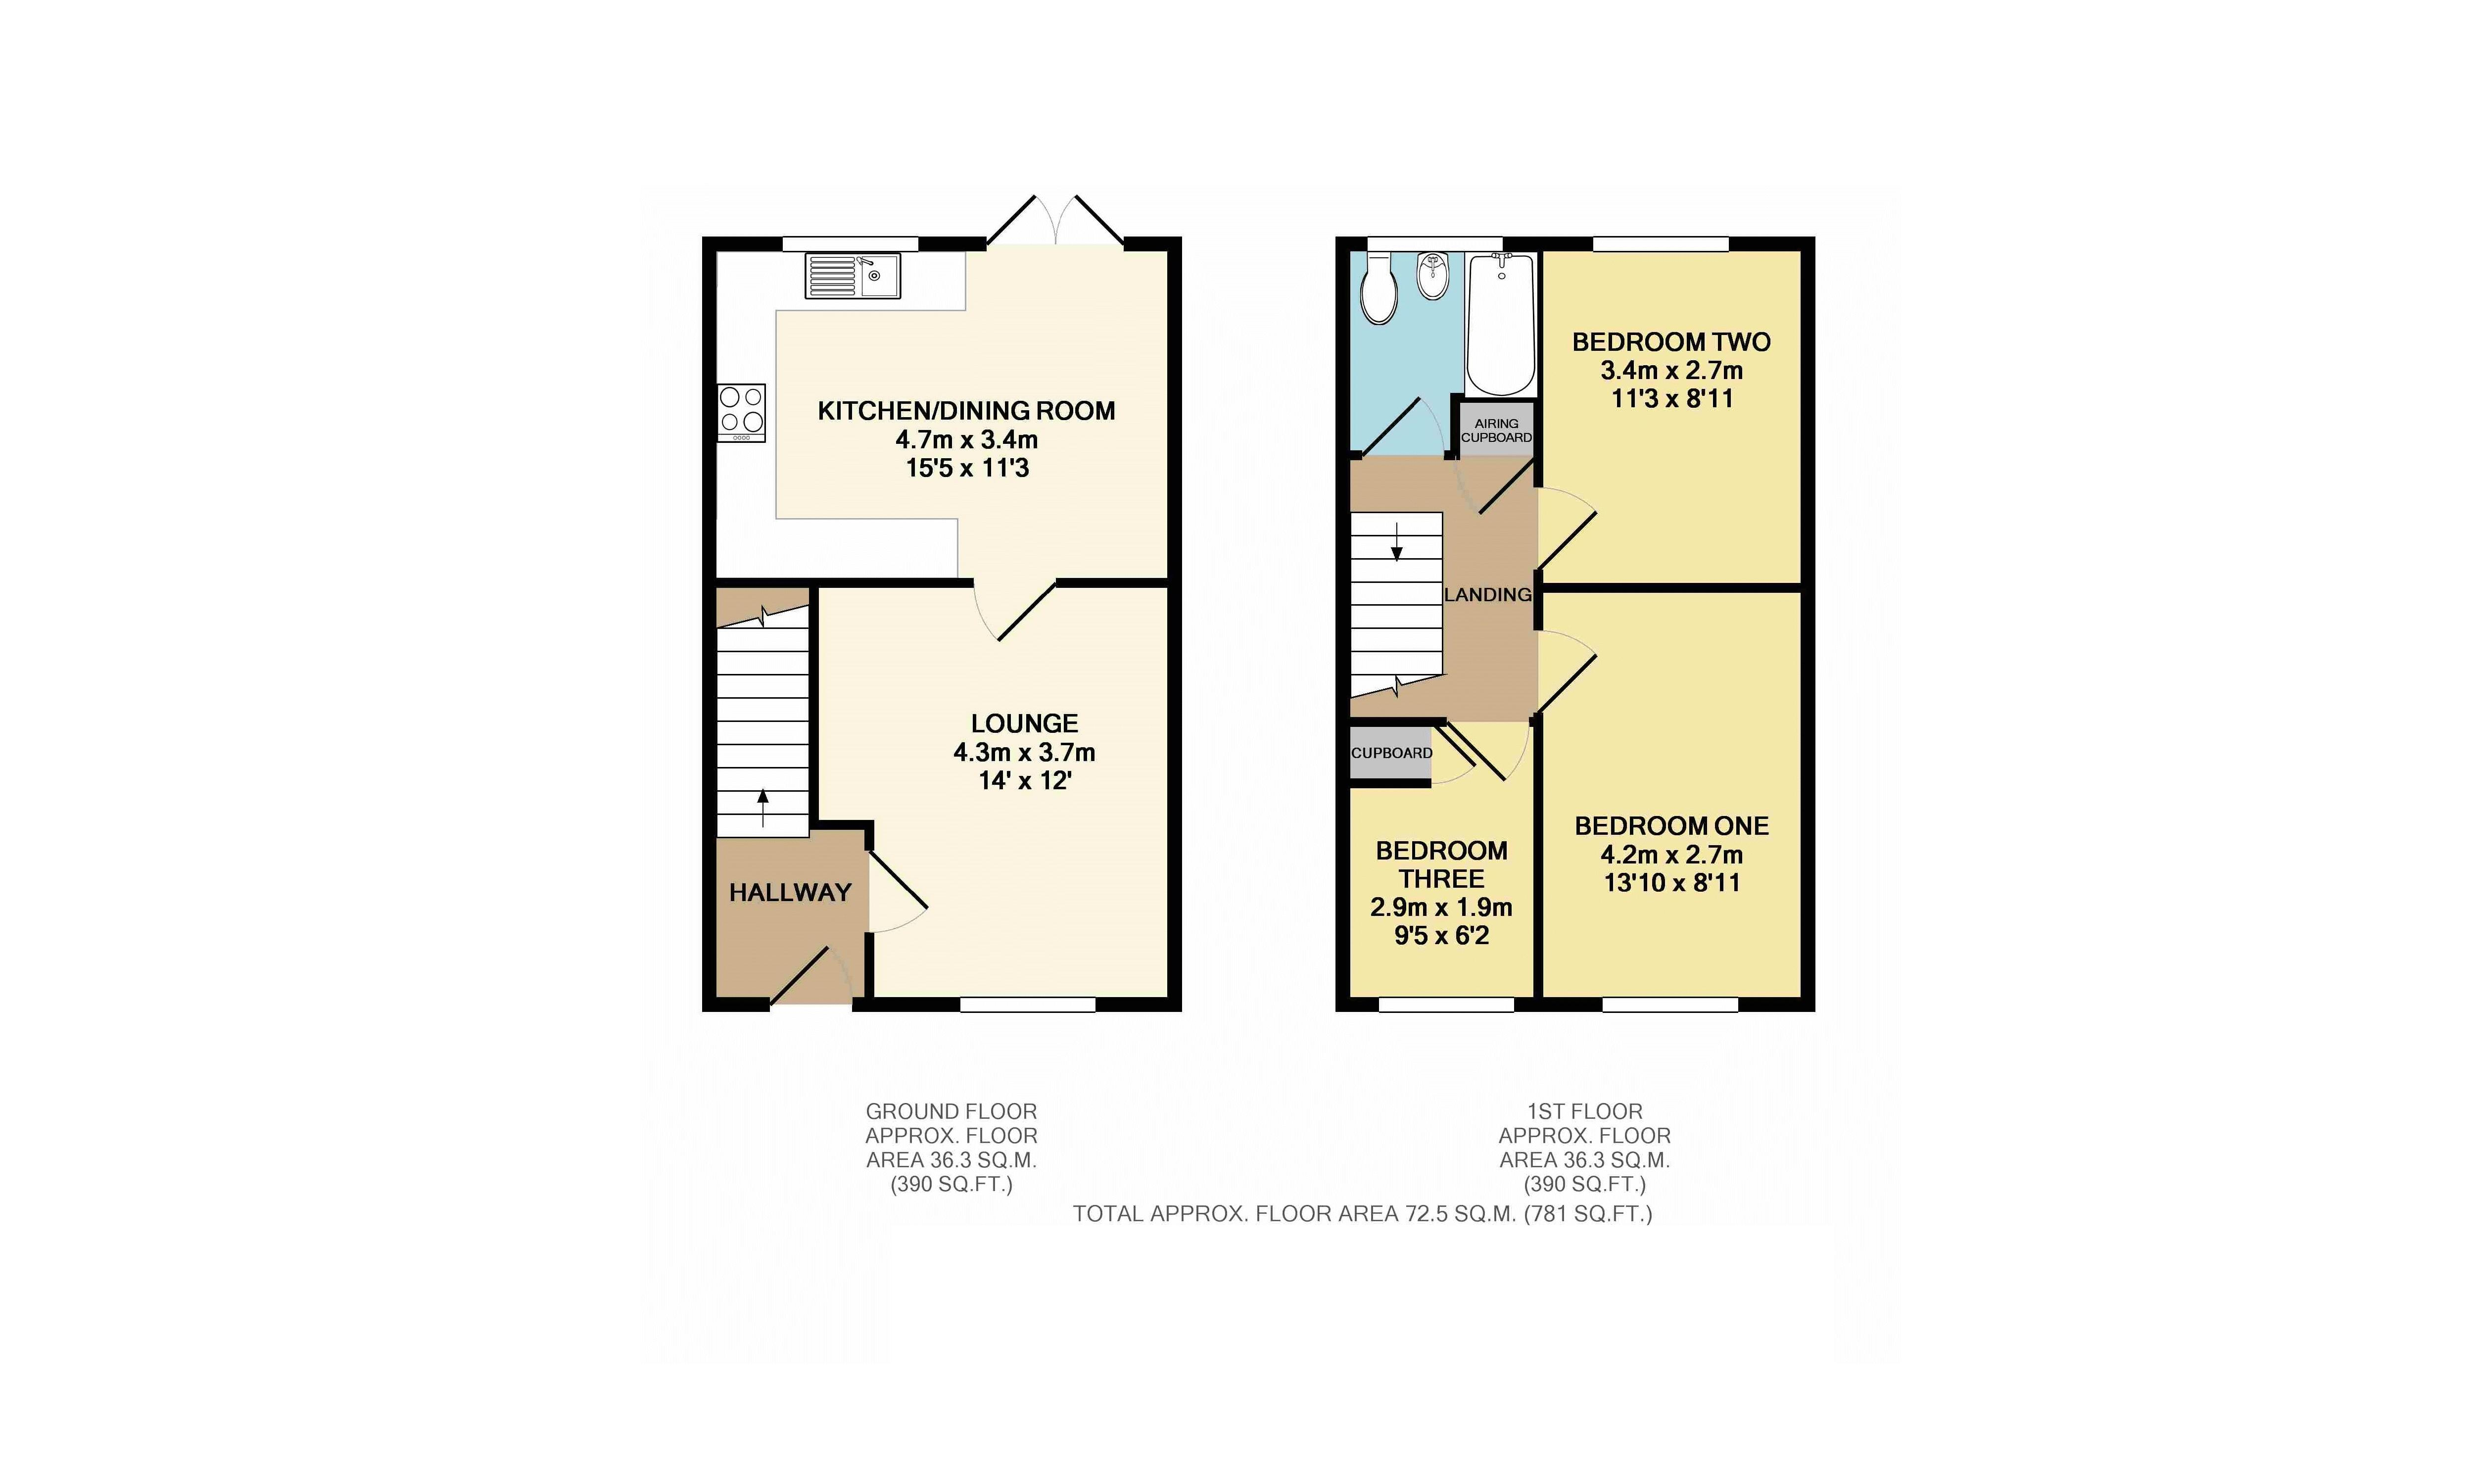 3 bedroom house for sale in linslade for How much is a bedroom worth in an appraisal